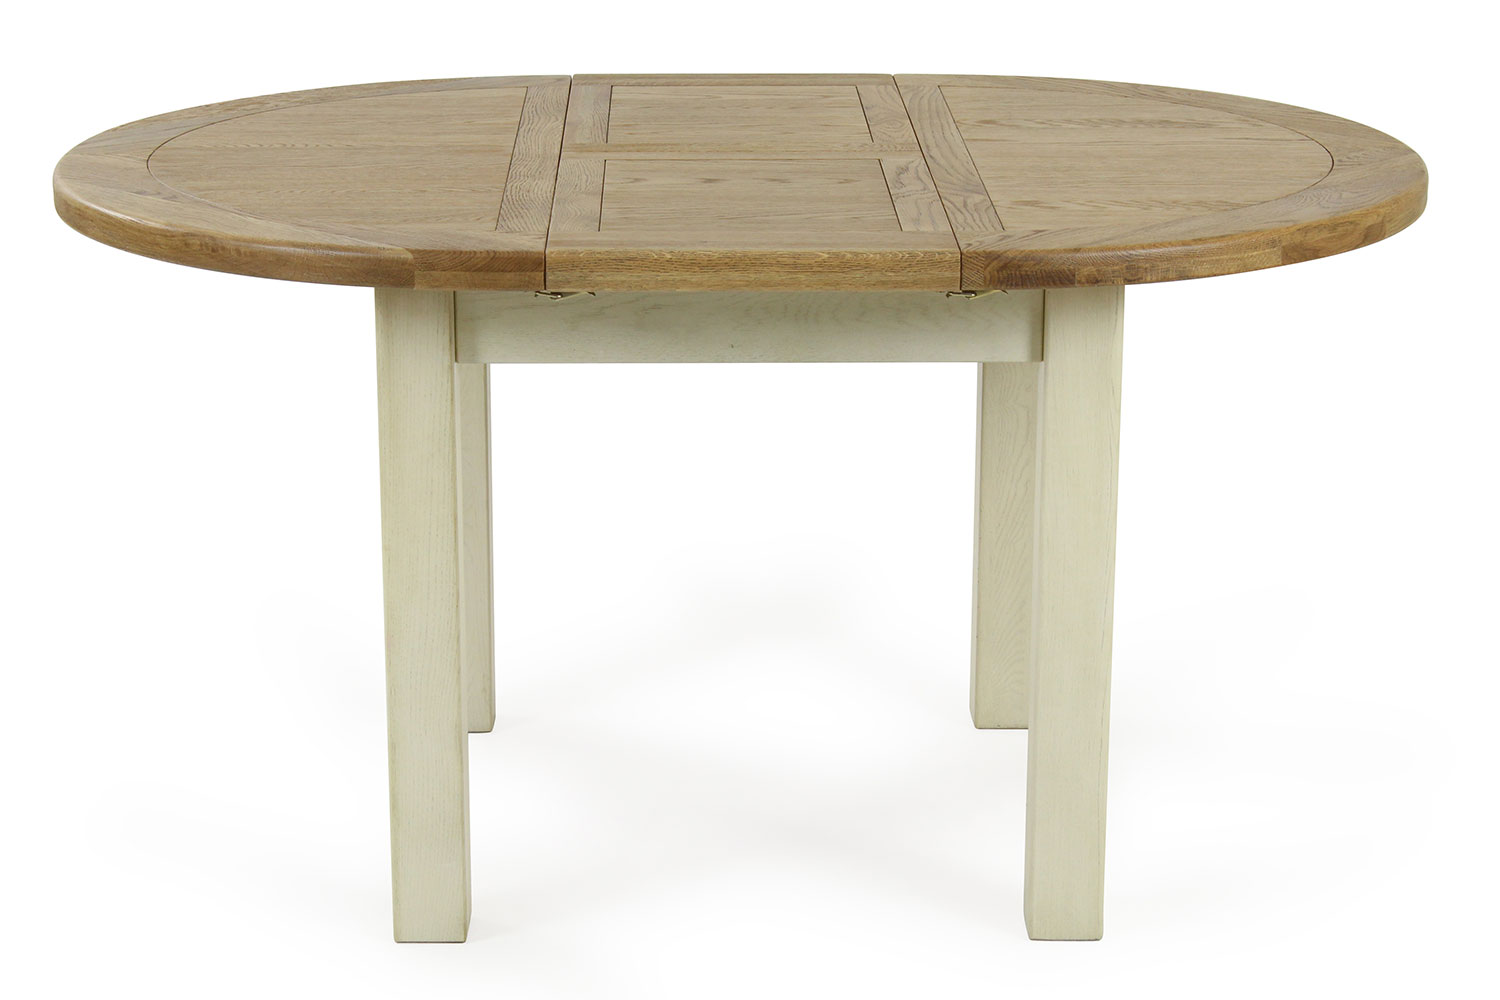 Round Dining Table With Extensions Mansfield Round Extension Dining Table By Debonaire Furniture